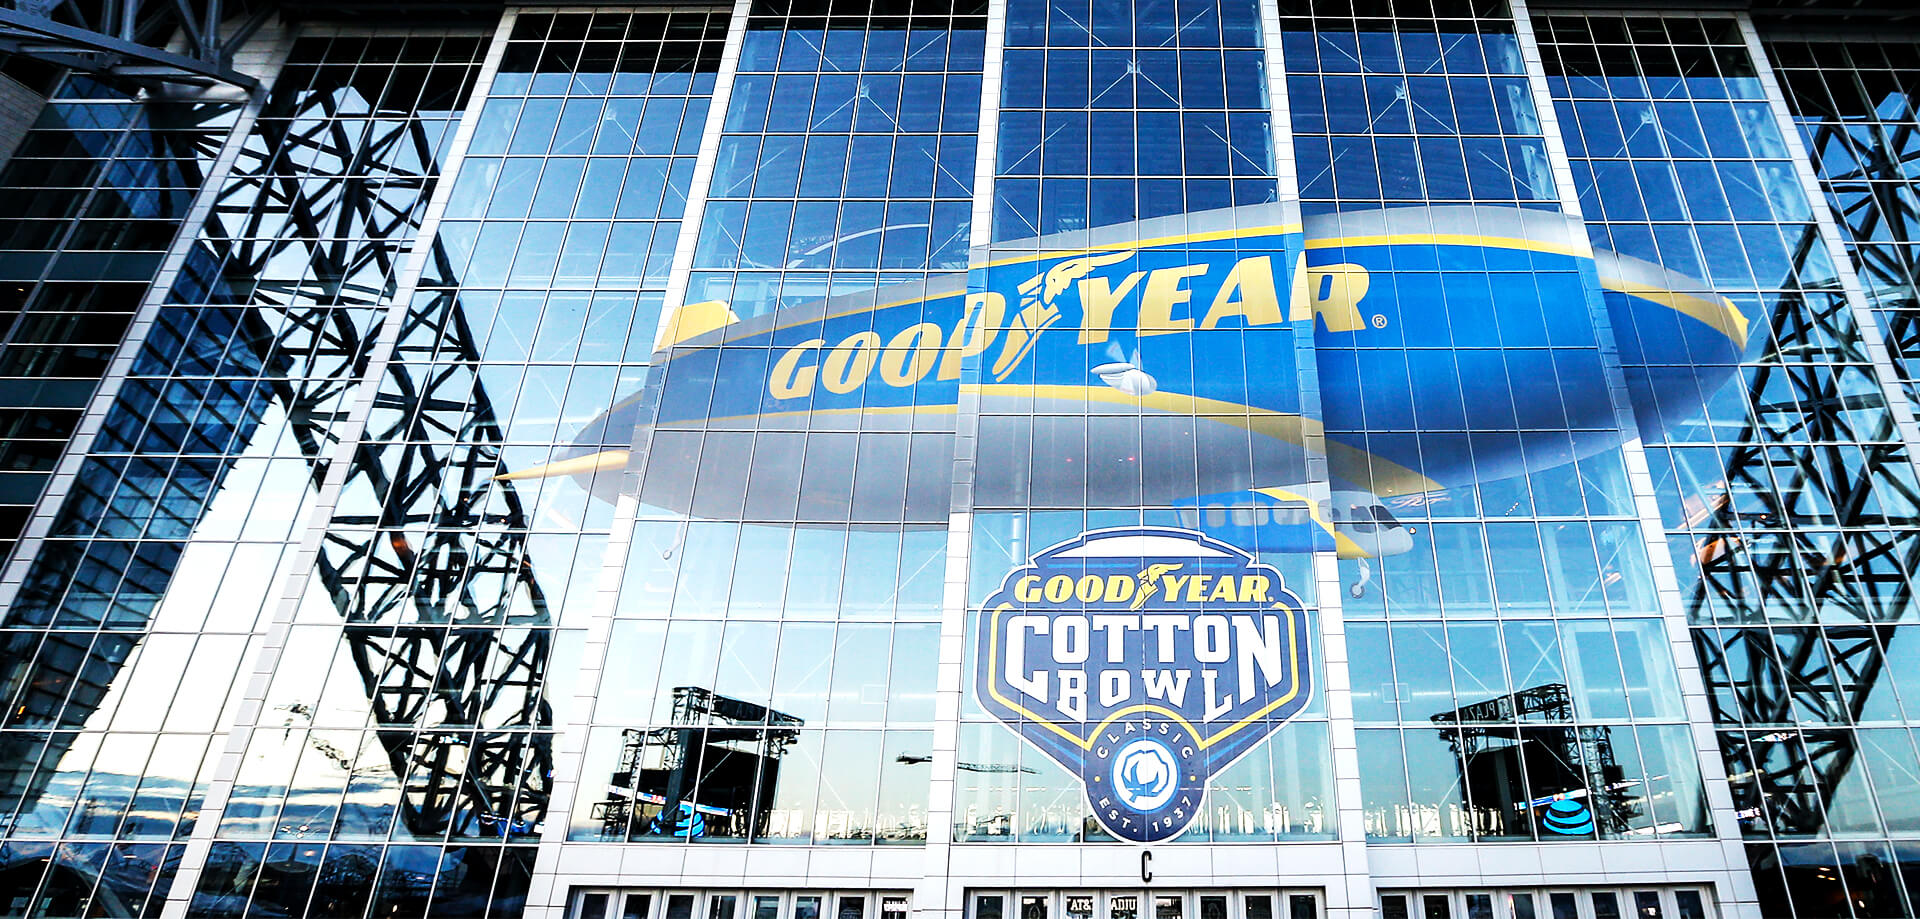 Our creative agency combined experiential and sports marketing to make a highly engaging Cotton Bowl event for Goodyear.